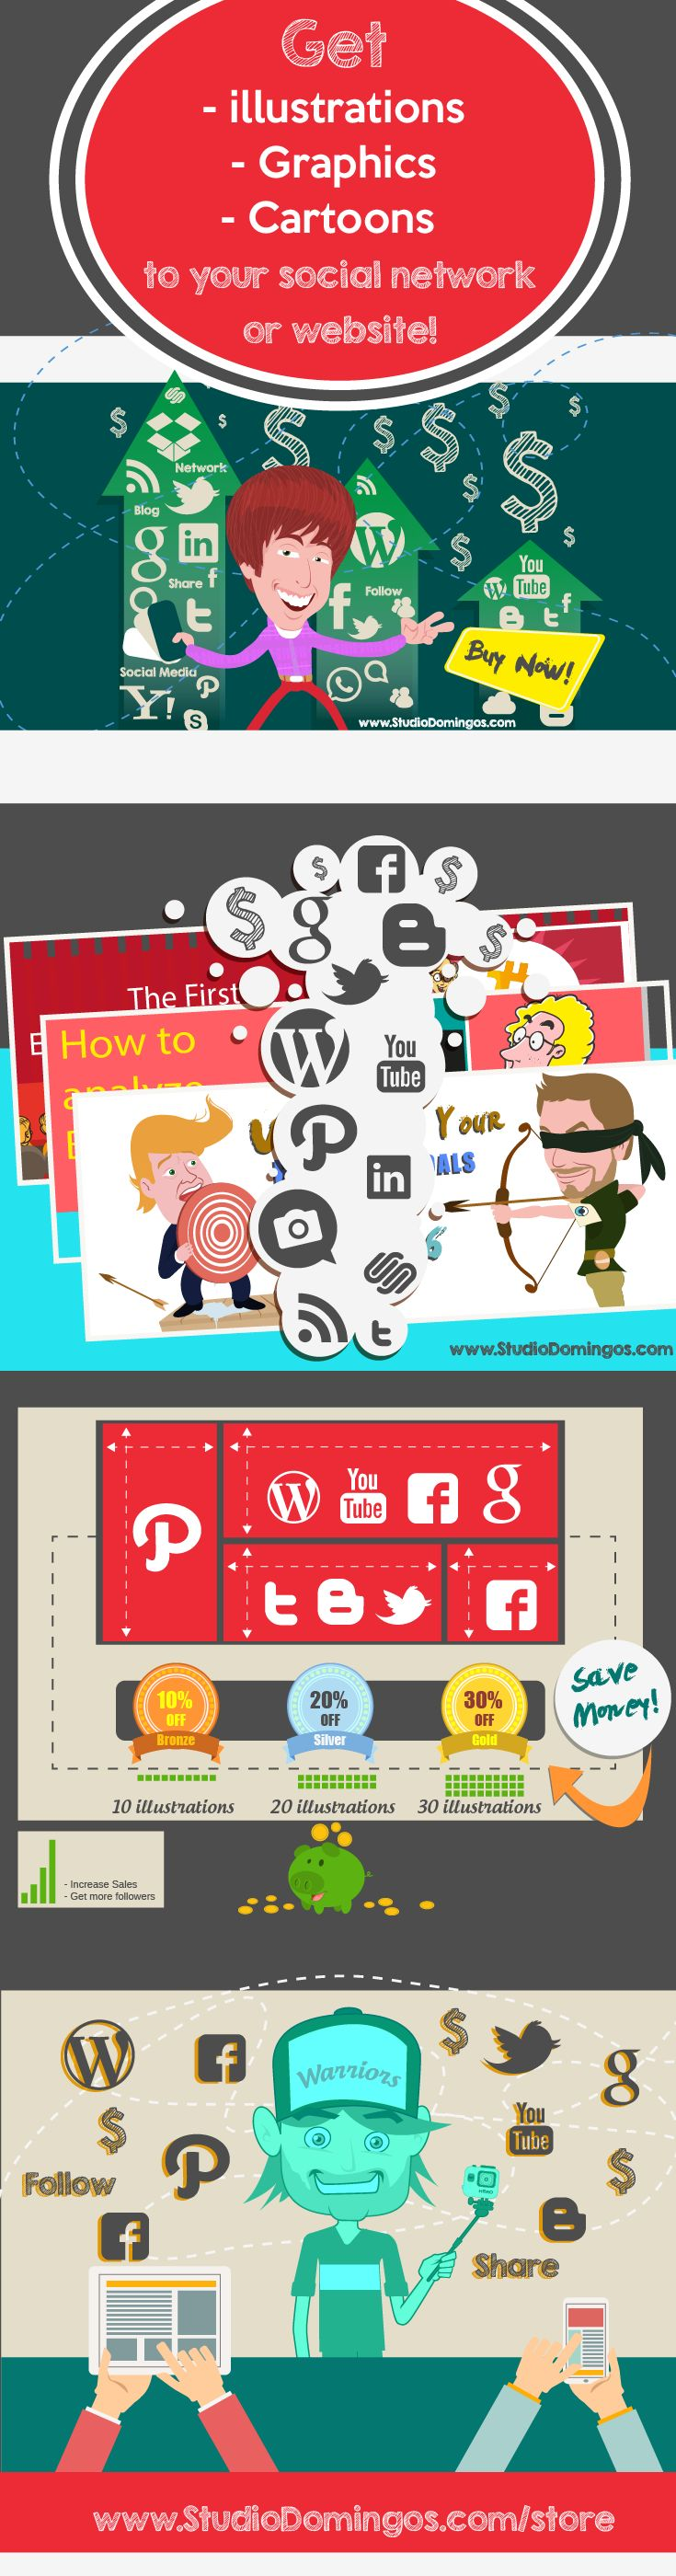 How to stand out on social networks?